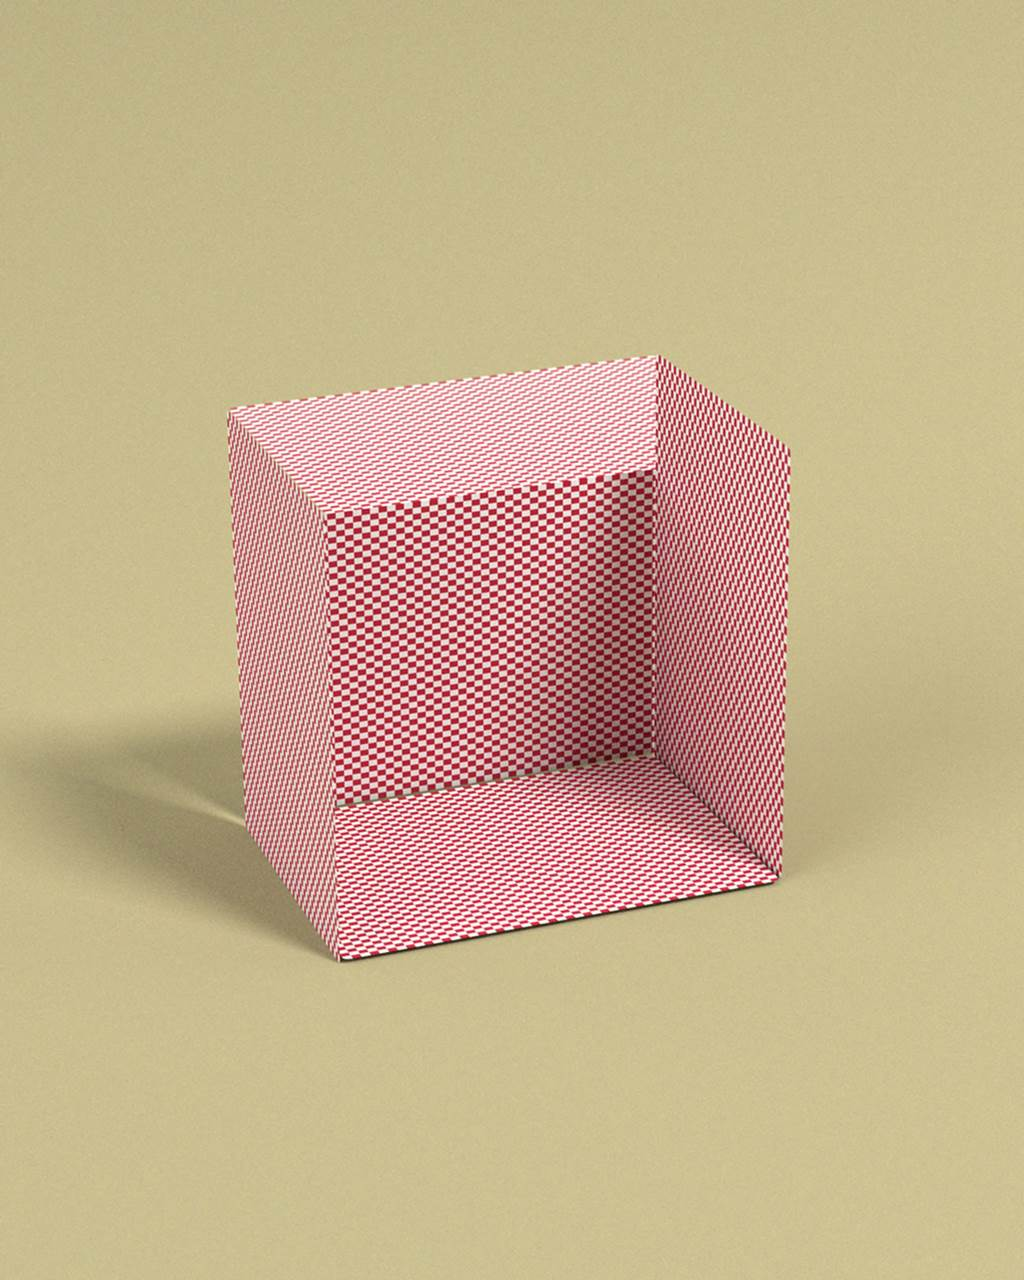 Cool Cute 3d Wallpapers 3d Cubes Optical Illusions Xcitefun Net